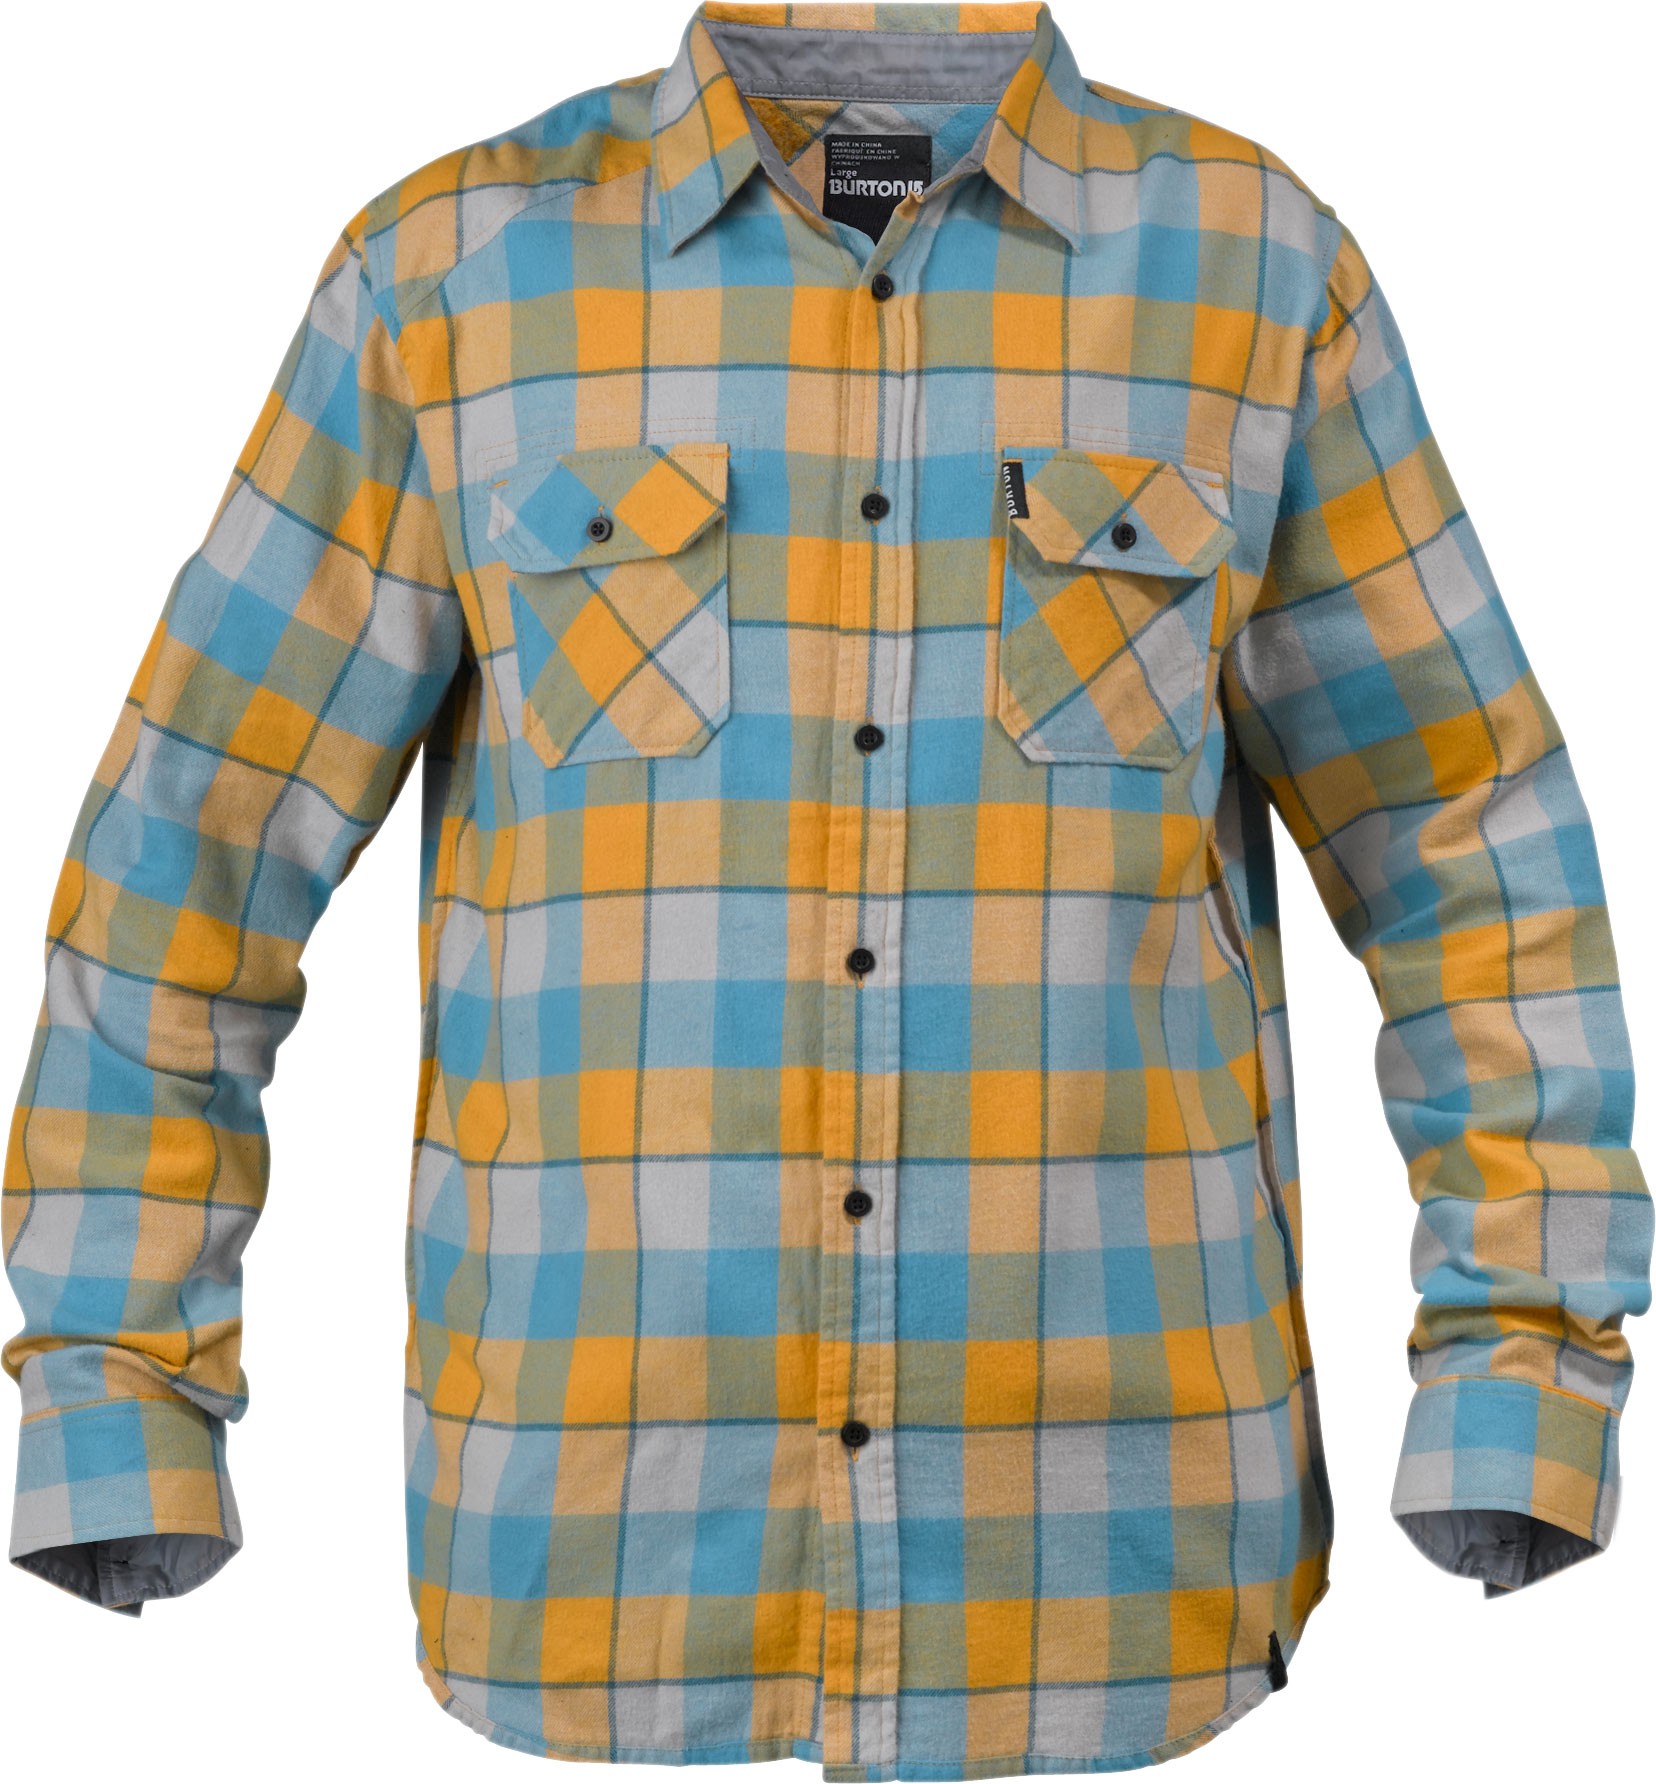 Snowboard Key Features of the Burton Brighton L/S Flannel Shirt: 100% Cotton Woven Yarn-Dyed Flannel with Chest Pockets Reverse French Seams Sig Fit - $24.95